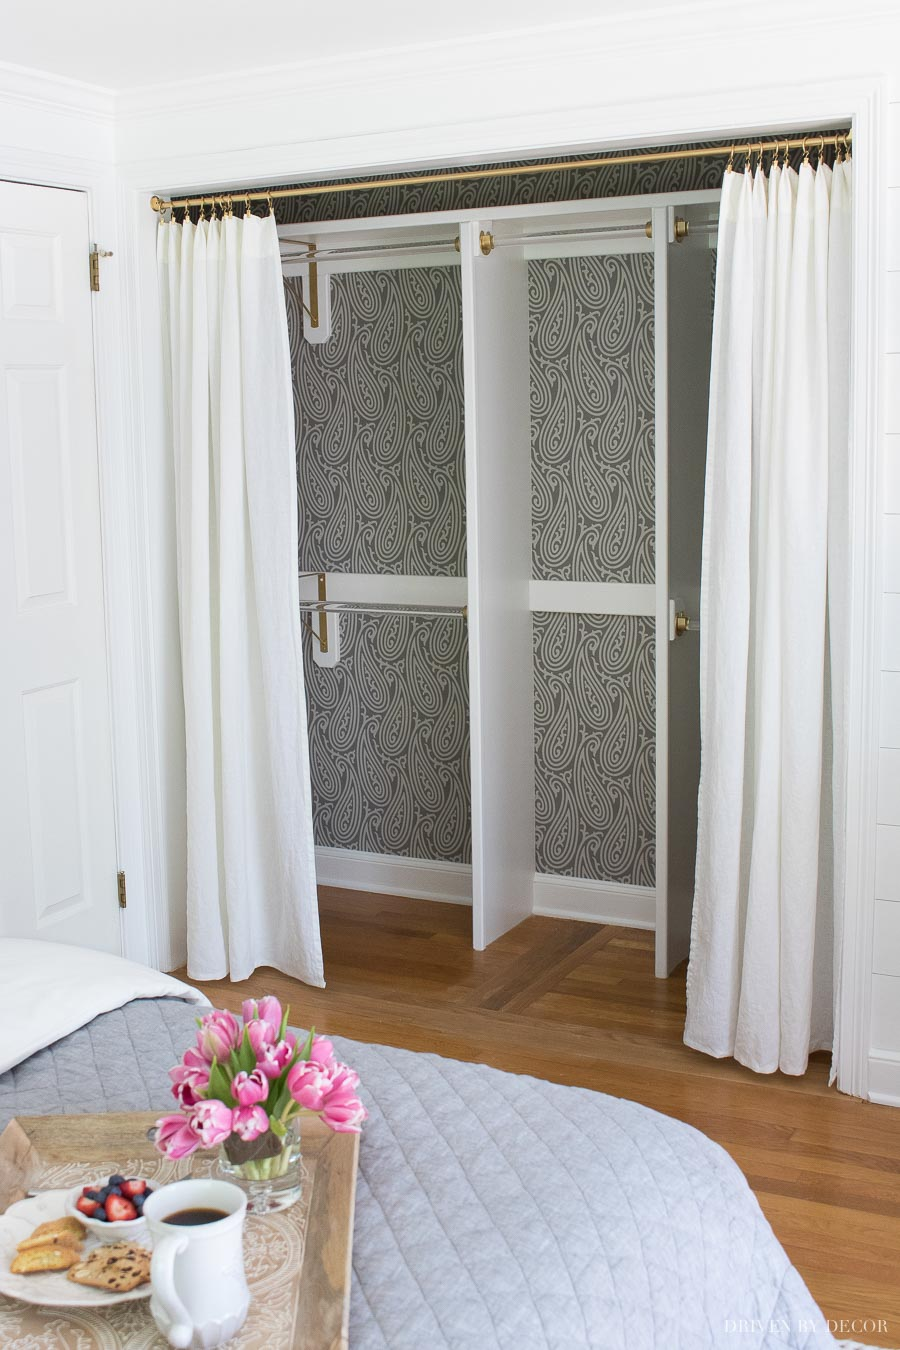 One of my favorite closet door ideas in this post! Removing the bifold doors and replacing them with drapes!